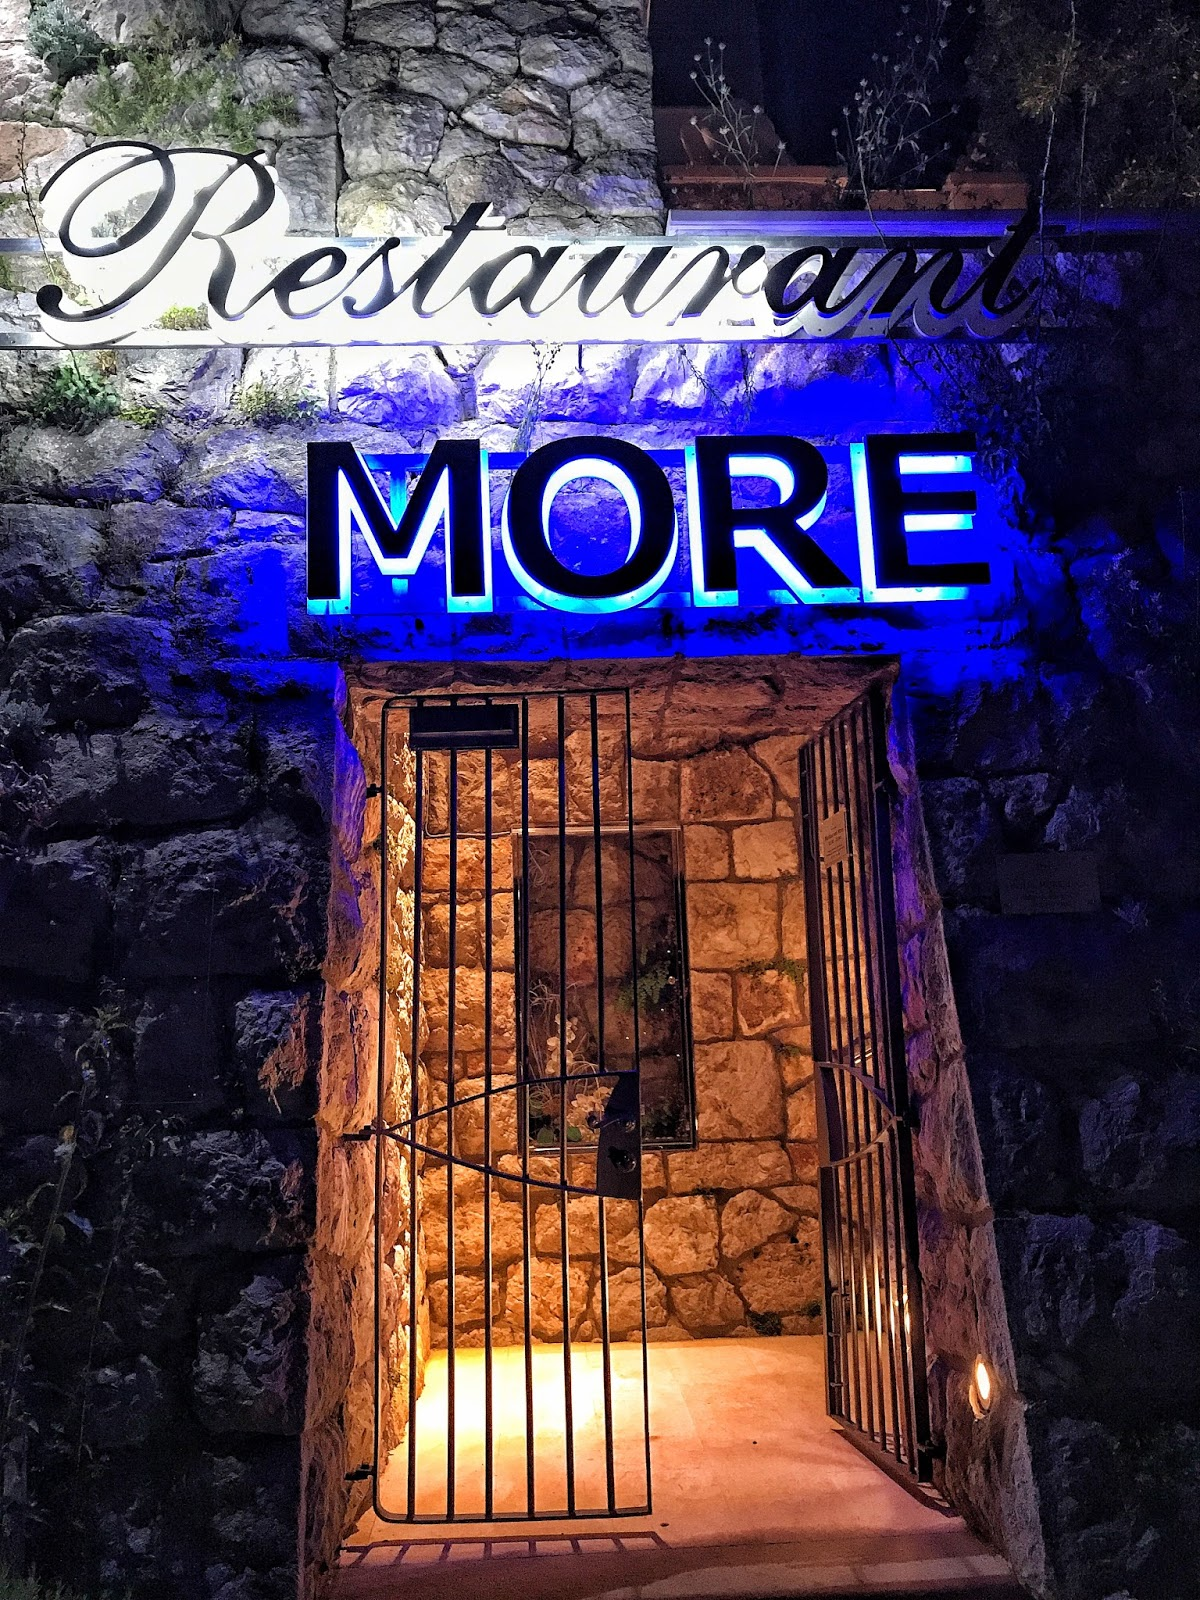 Restaurant More - Dubrovnik Cave Bar and Restaurant